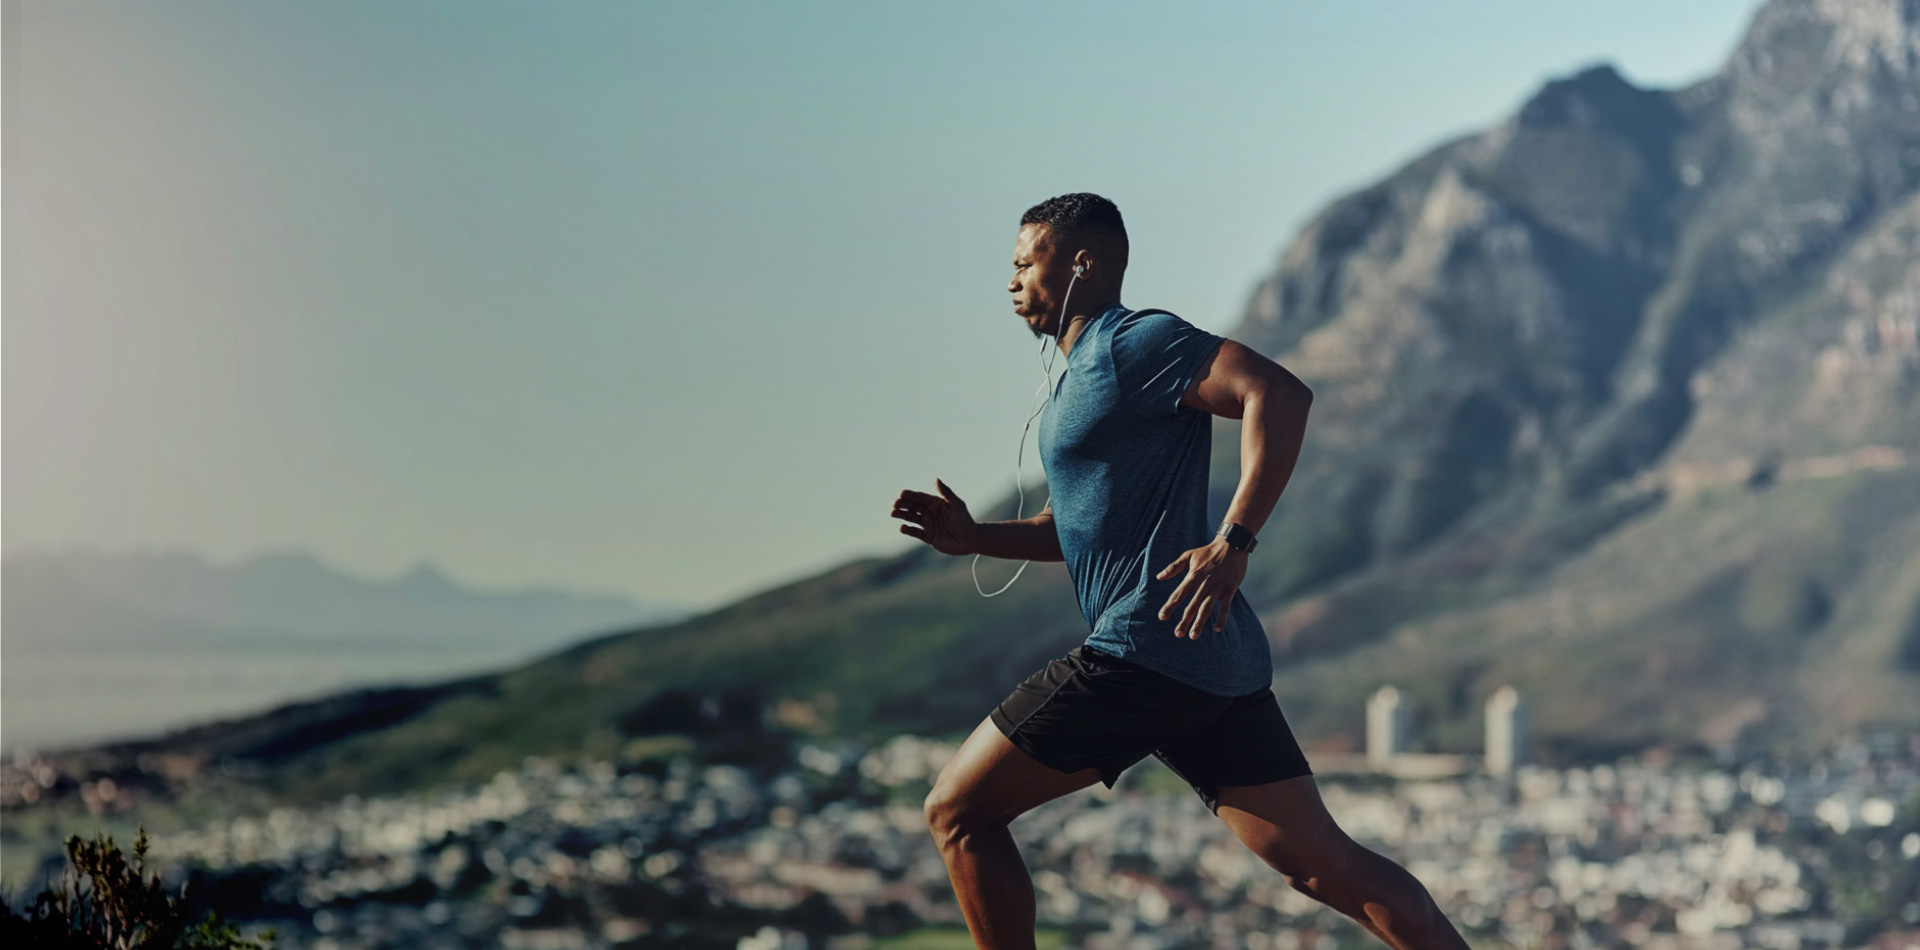 Runner working to achieve his goals